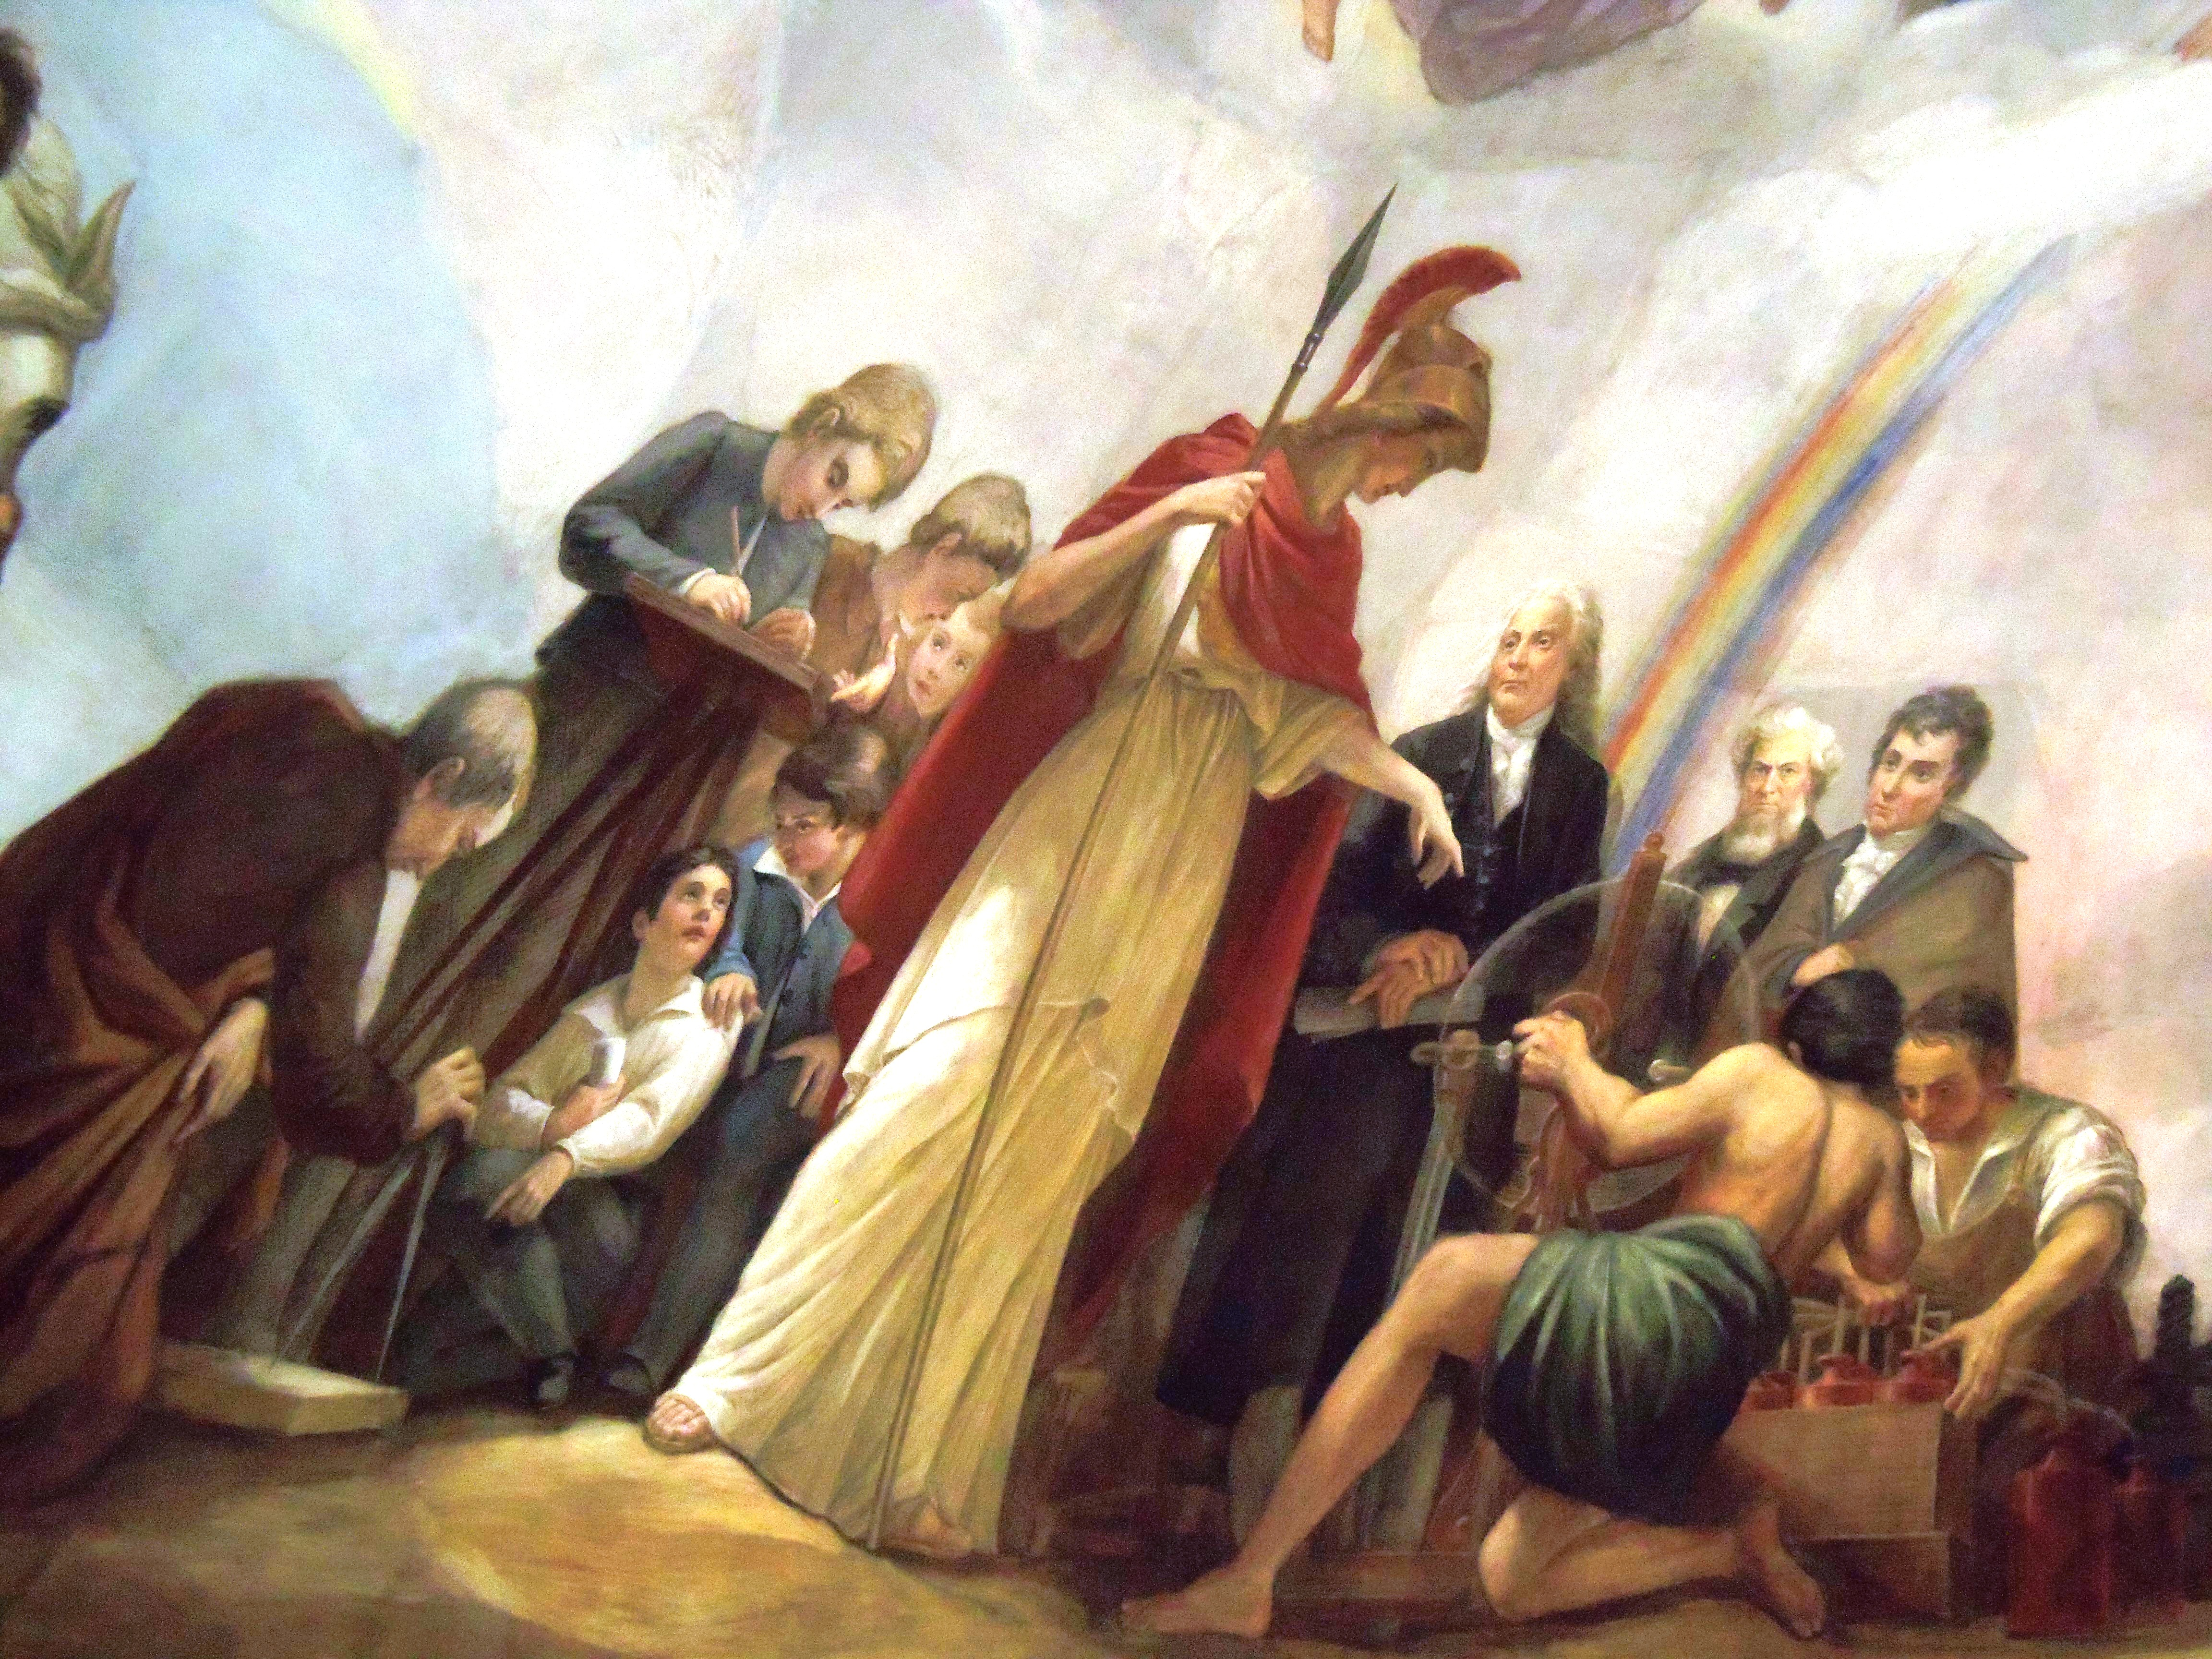 what is apothesis The apotheosis of washington depicts george washington sitting amongst the heavens in an exalted manner, or in literal terms, ascending and becoming a god.